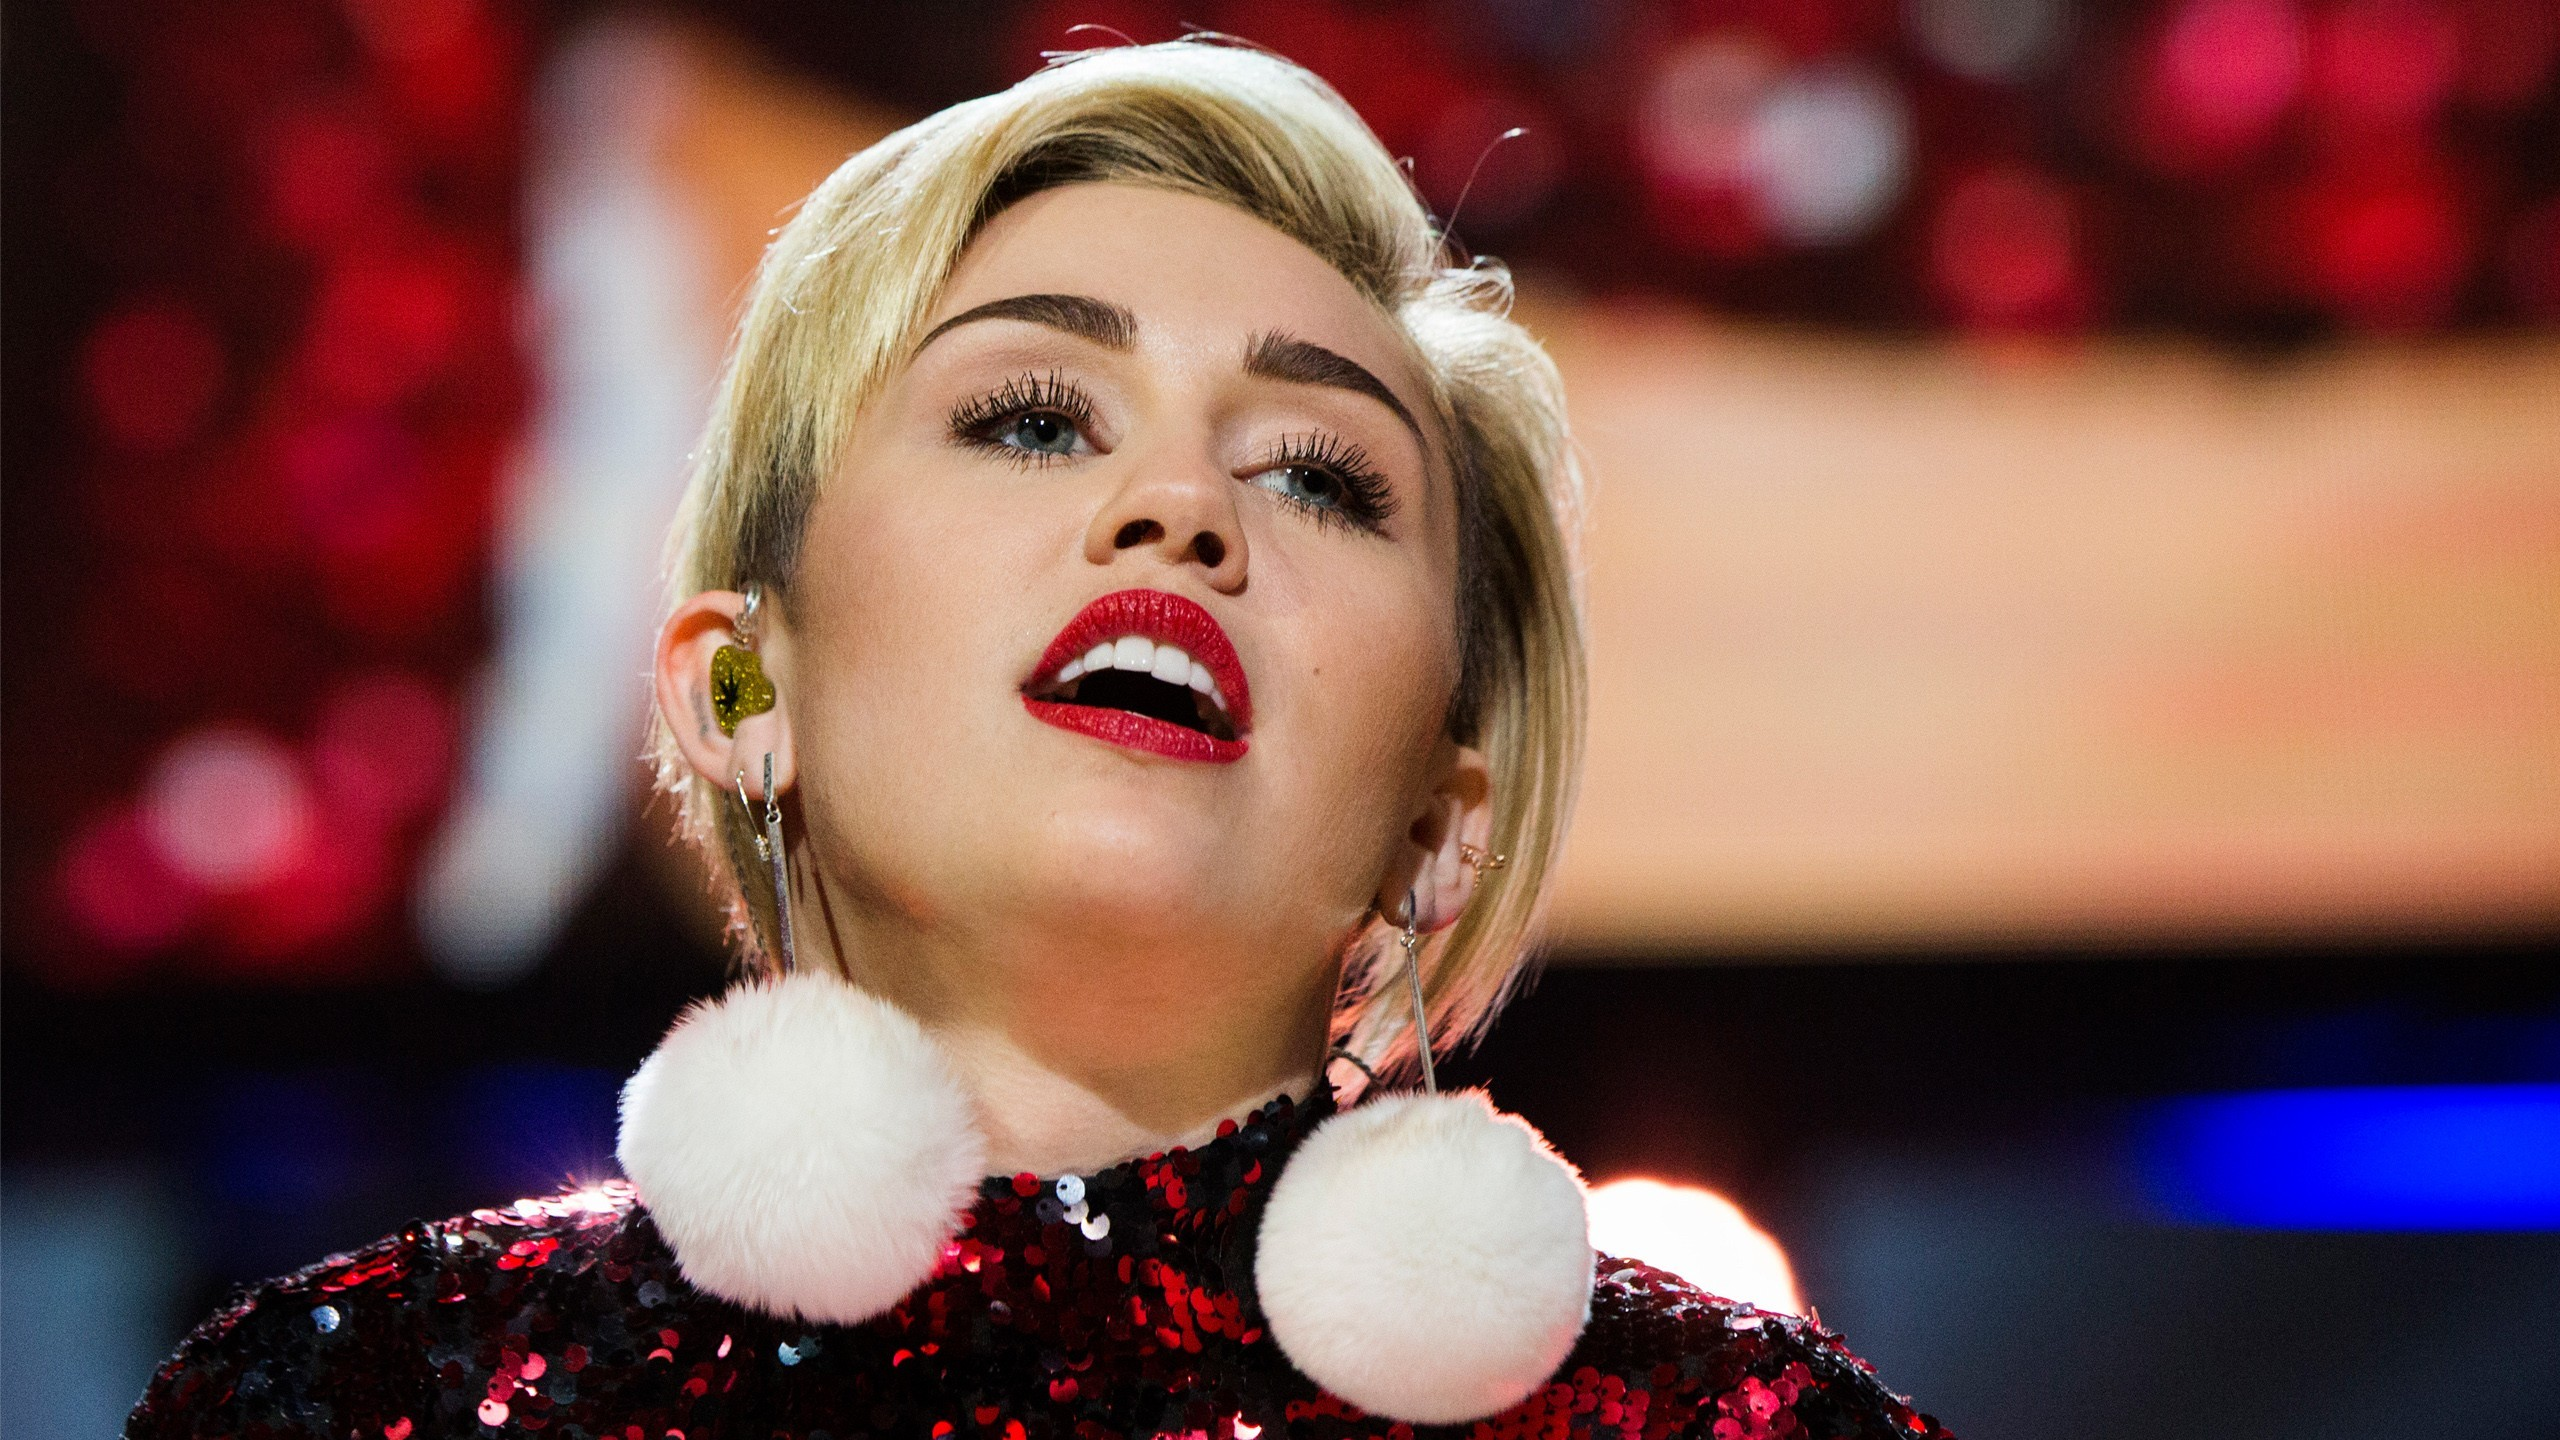 Miley Cyrus Wallpaper 23 69 Images